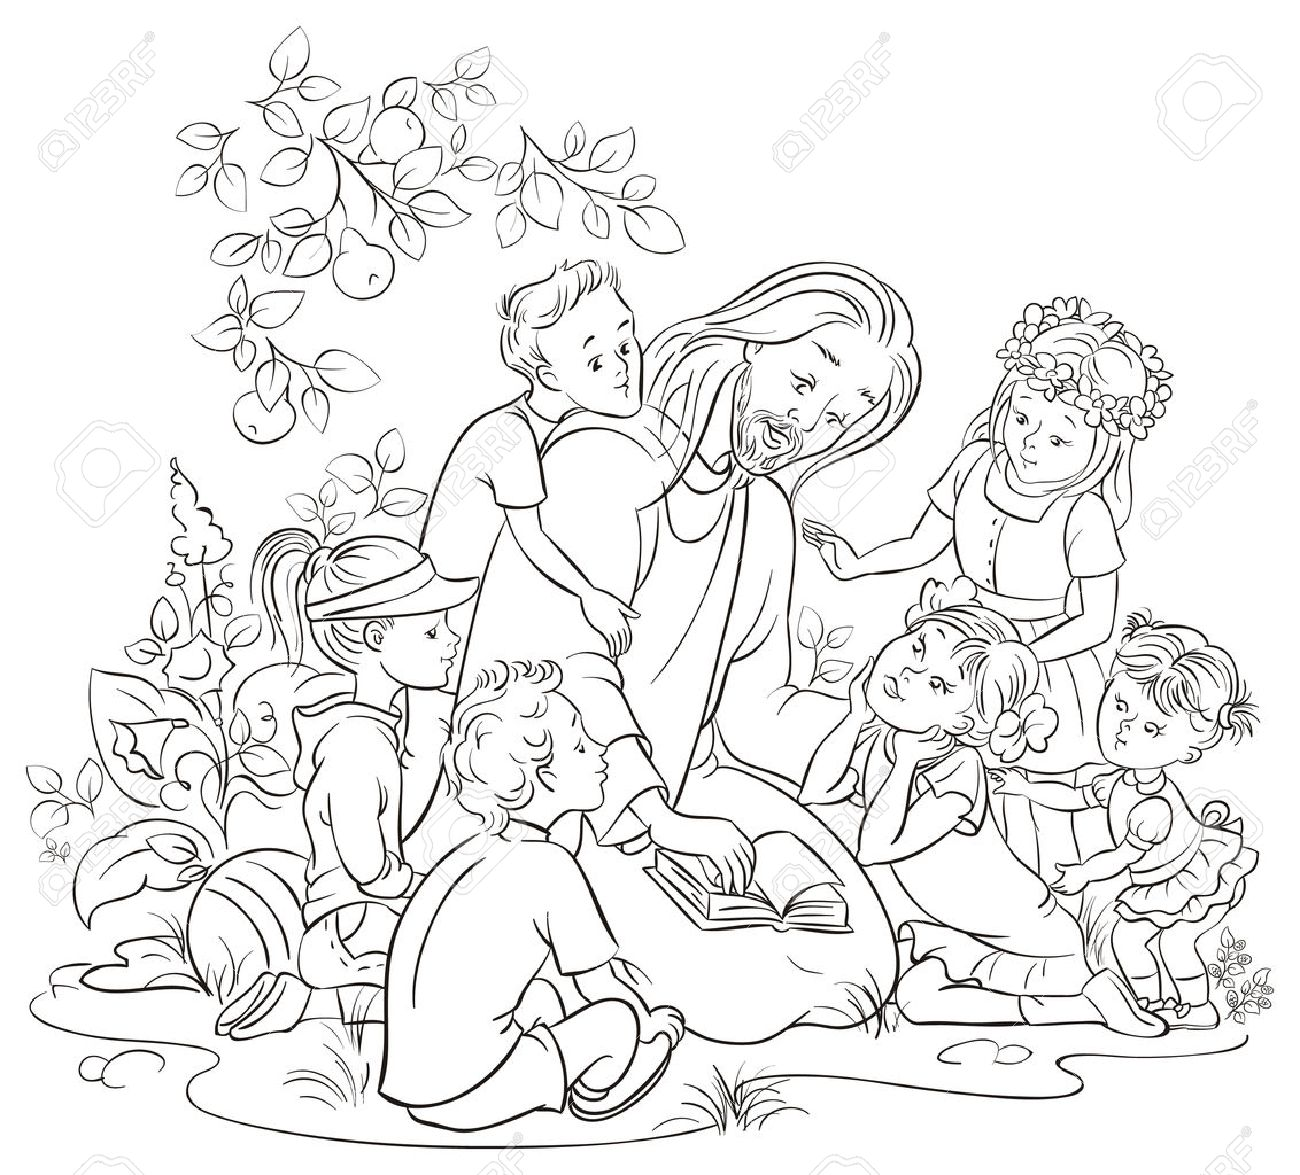 Jesus reading the Bible with Children Colouring page - 27529460